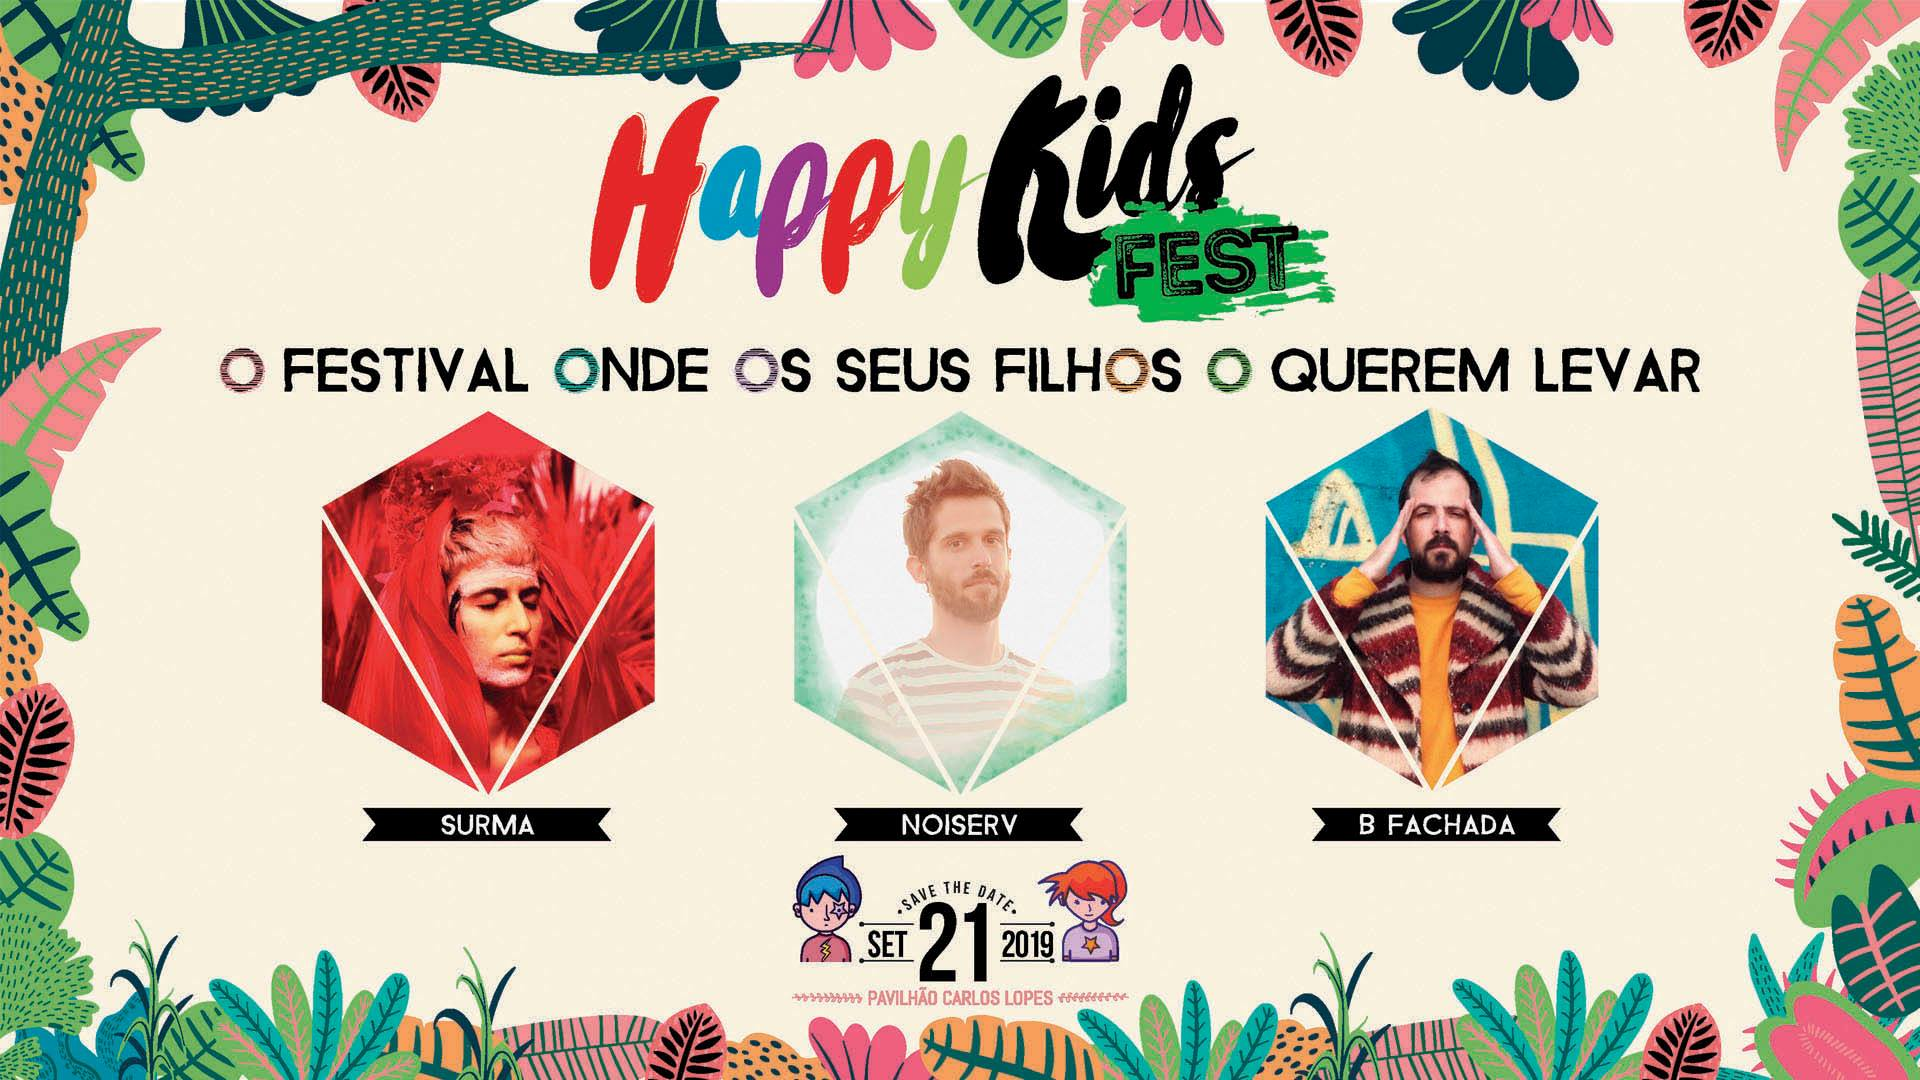 Happy Kids Fest